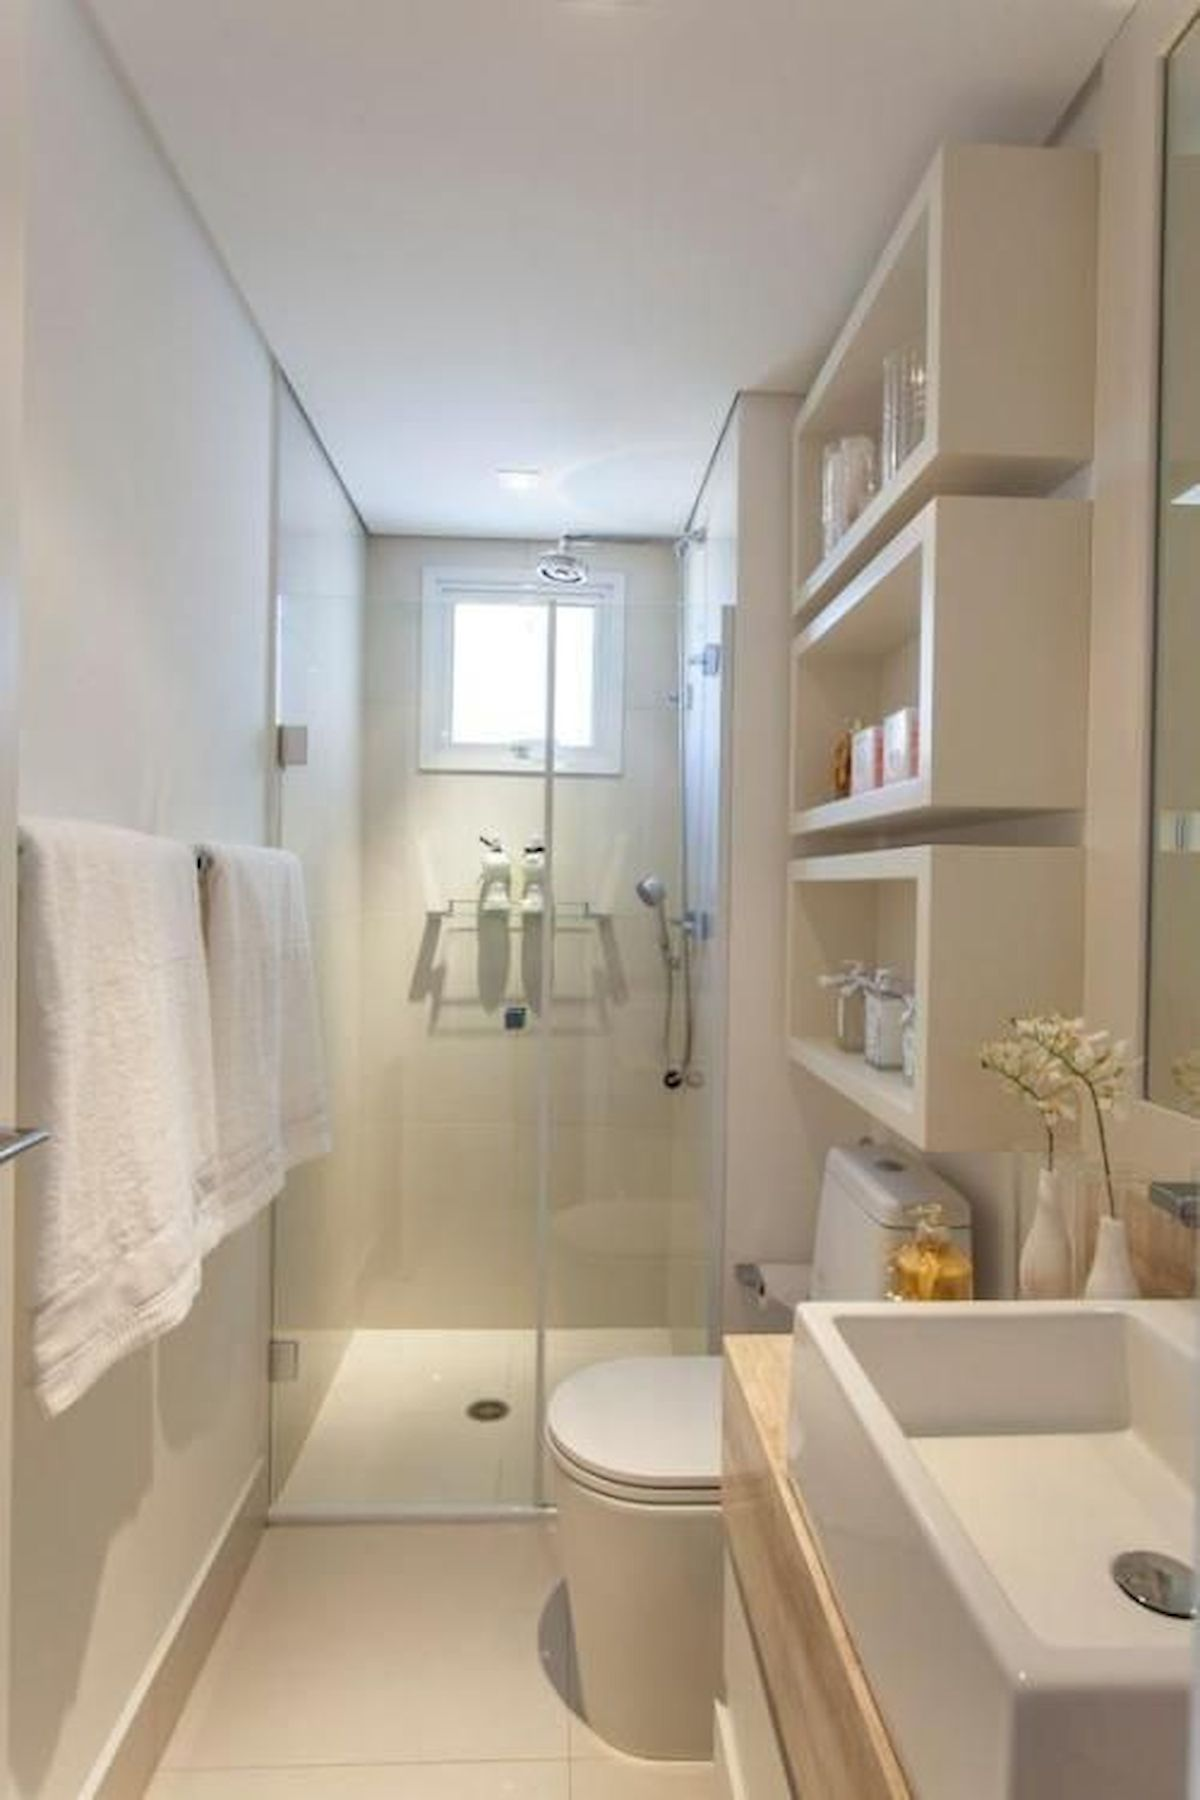 50 Best DIY Storage Design Ideas To Maximize Your Small Bathroom Space (9)